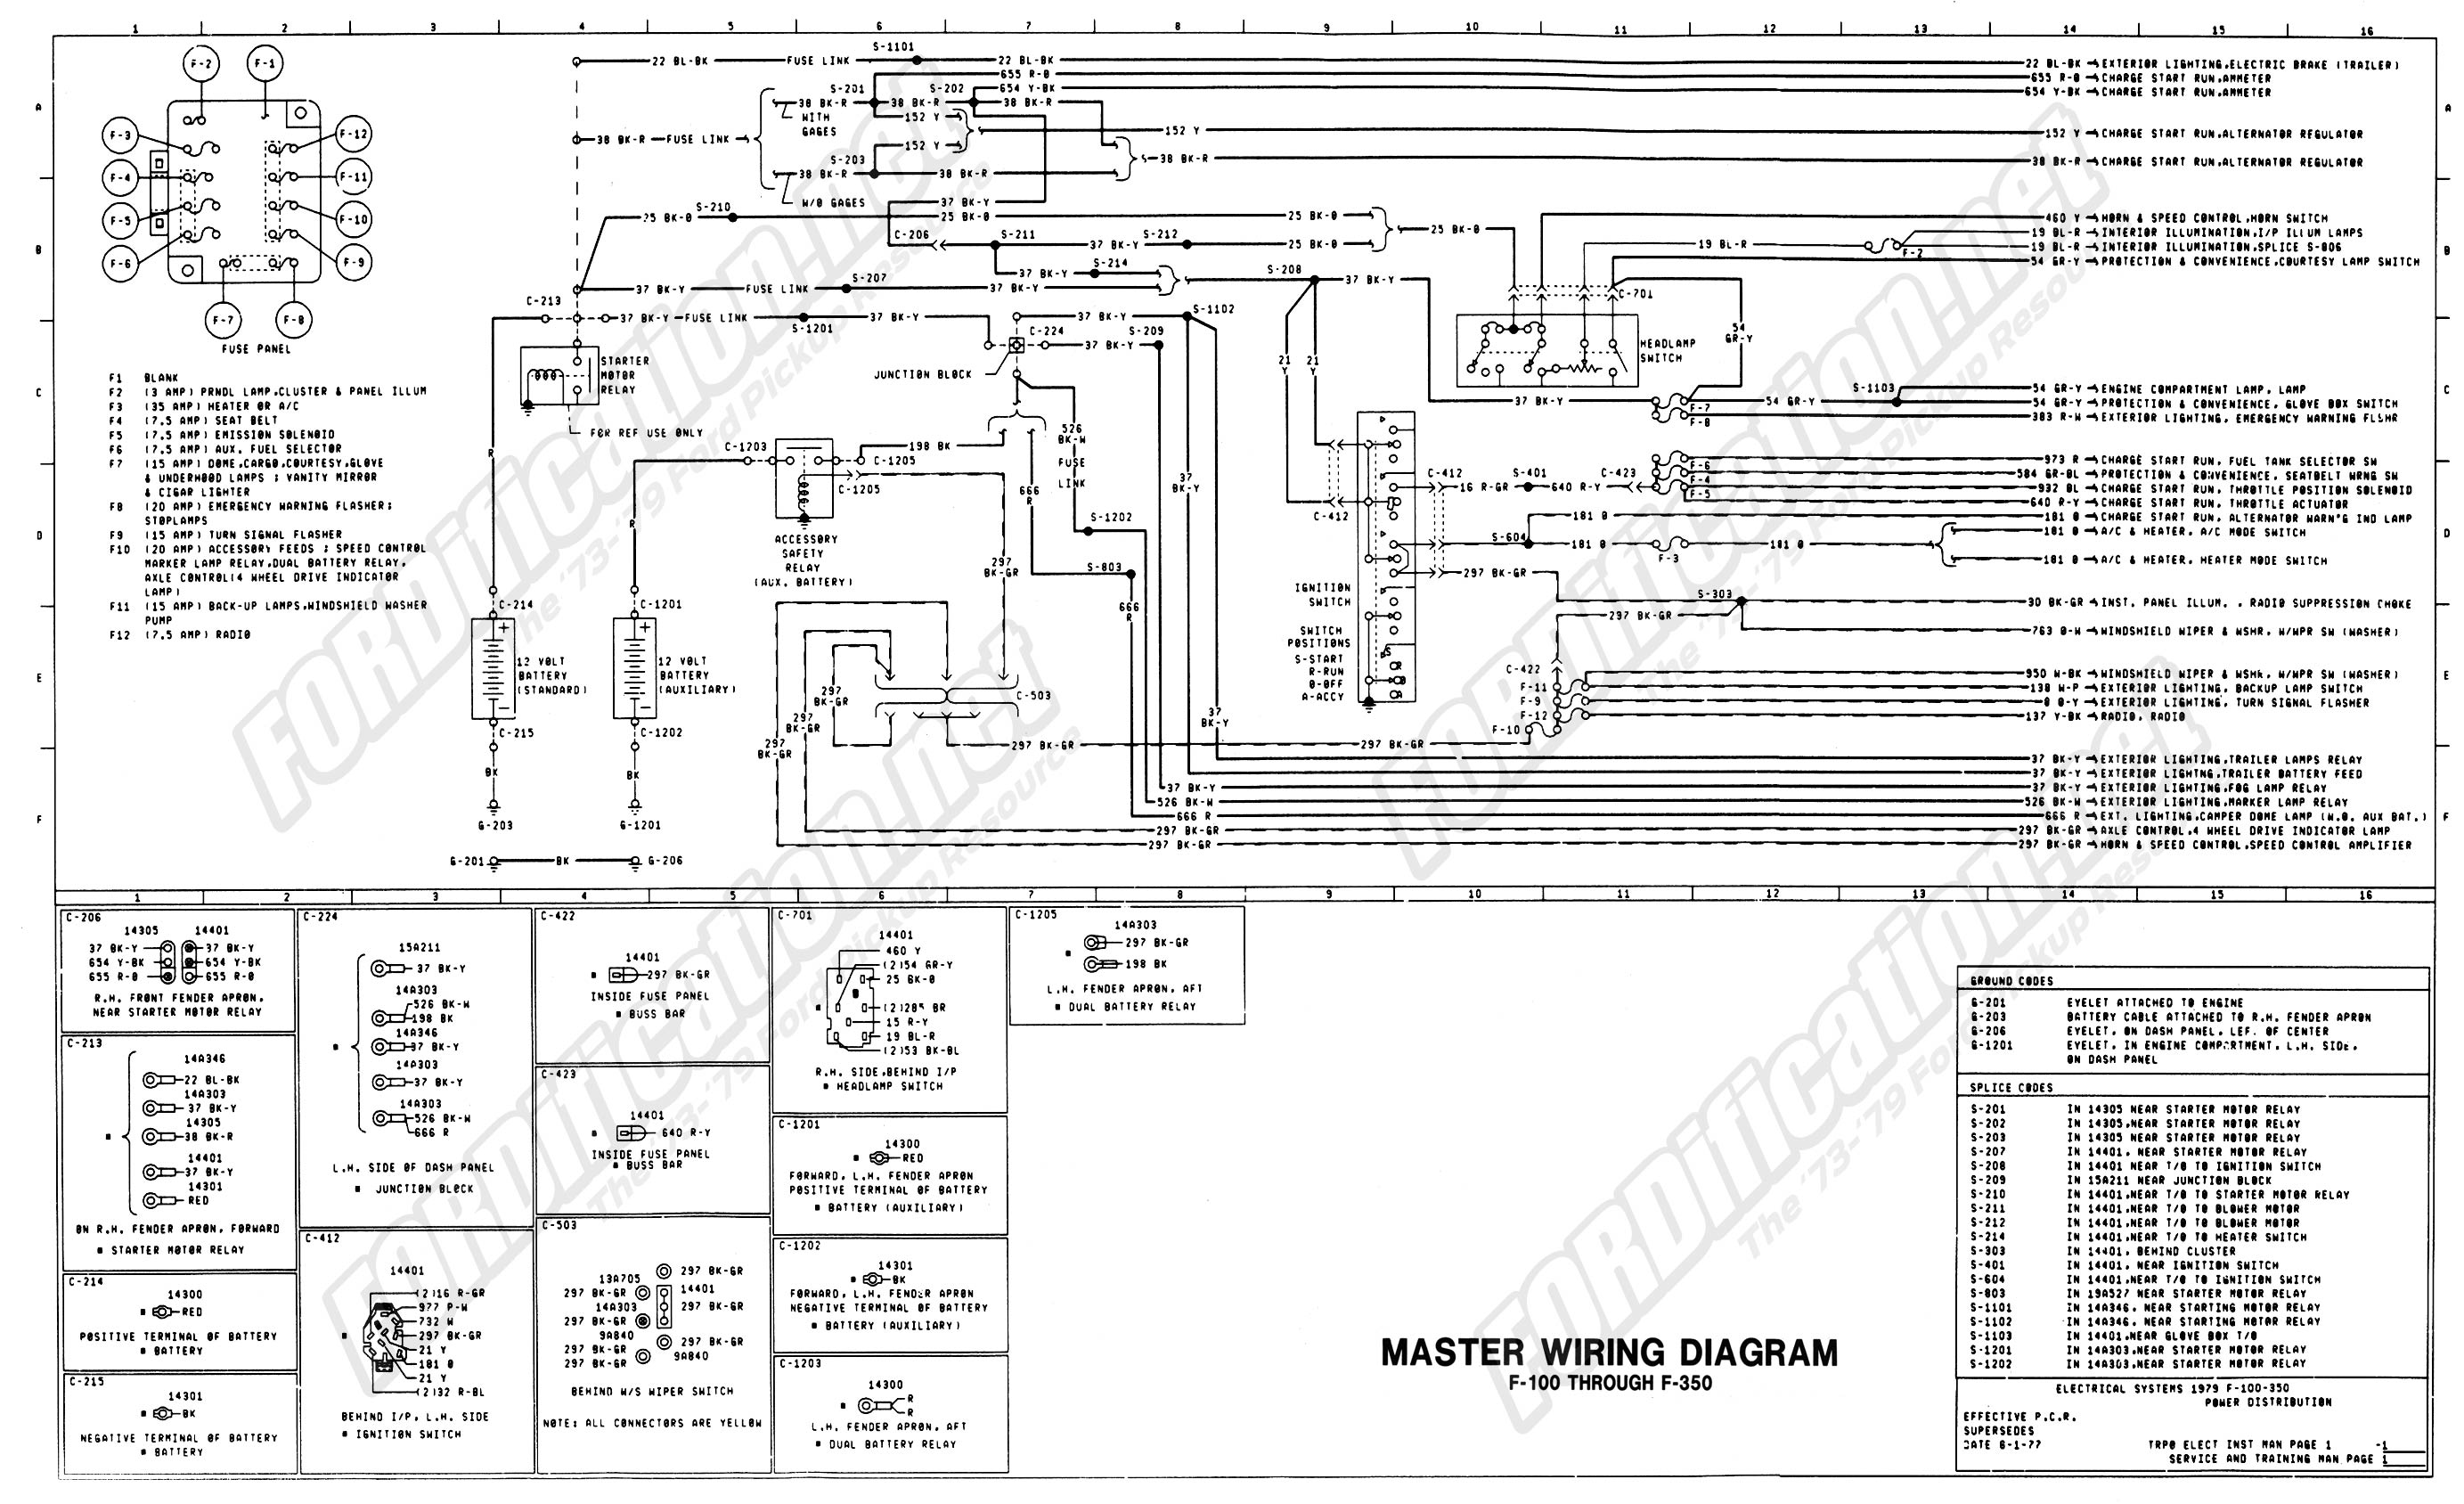 Magnificent Pickup Wiring Diagram 79 Wiring Library Wiring 101 Orsalhahutechinfo